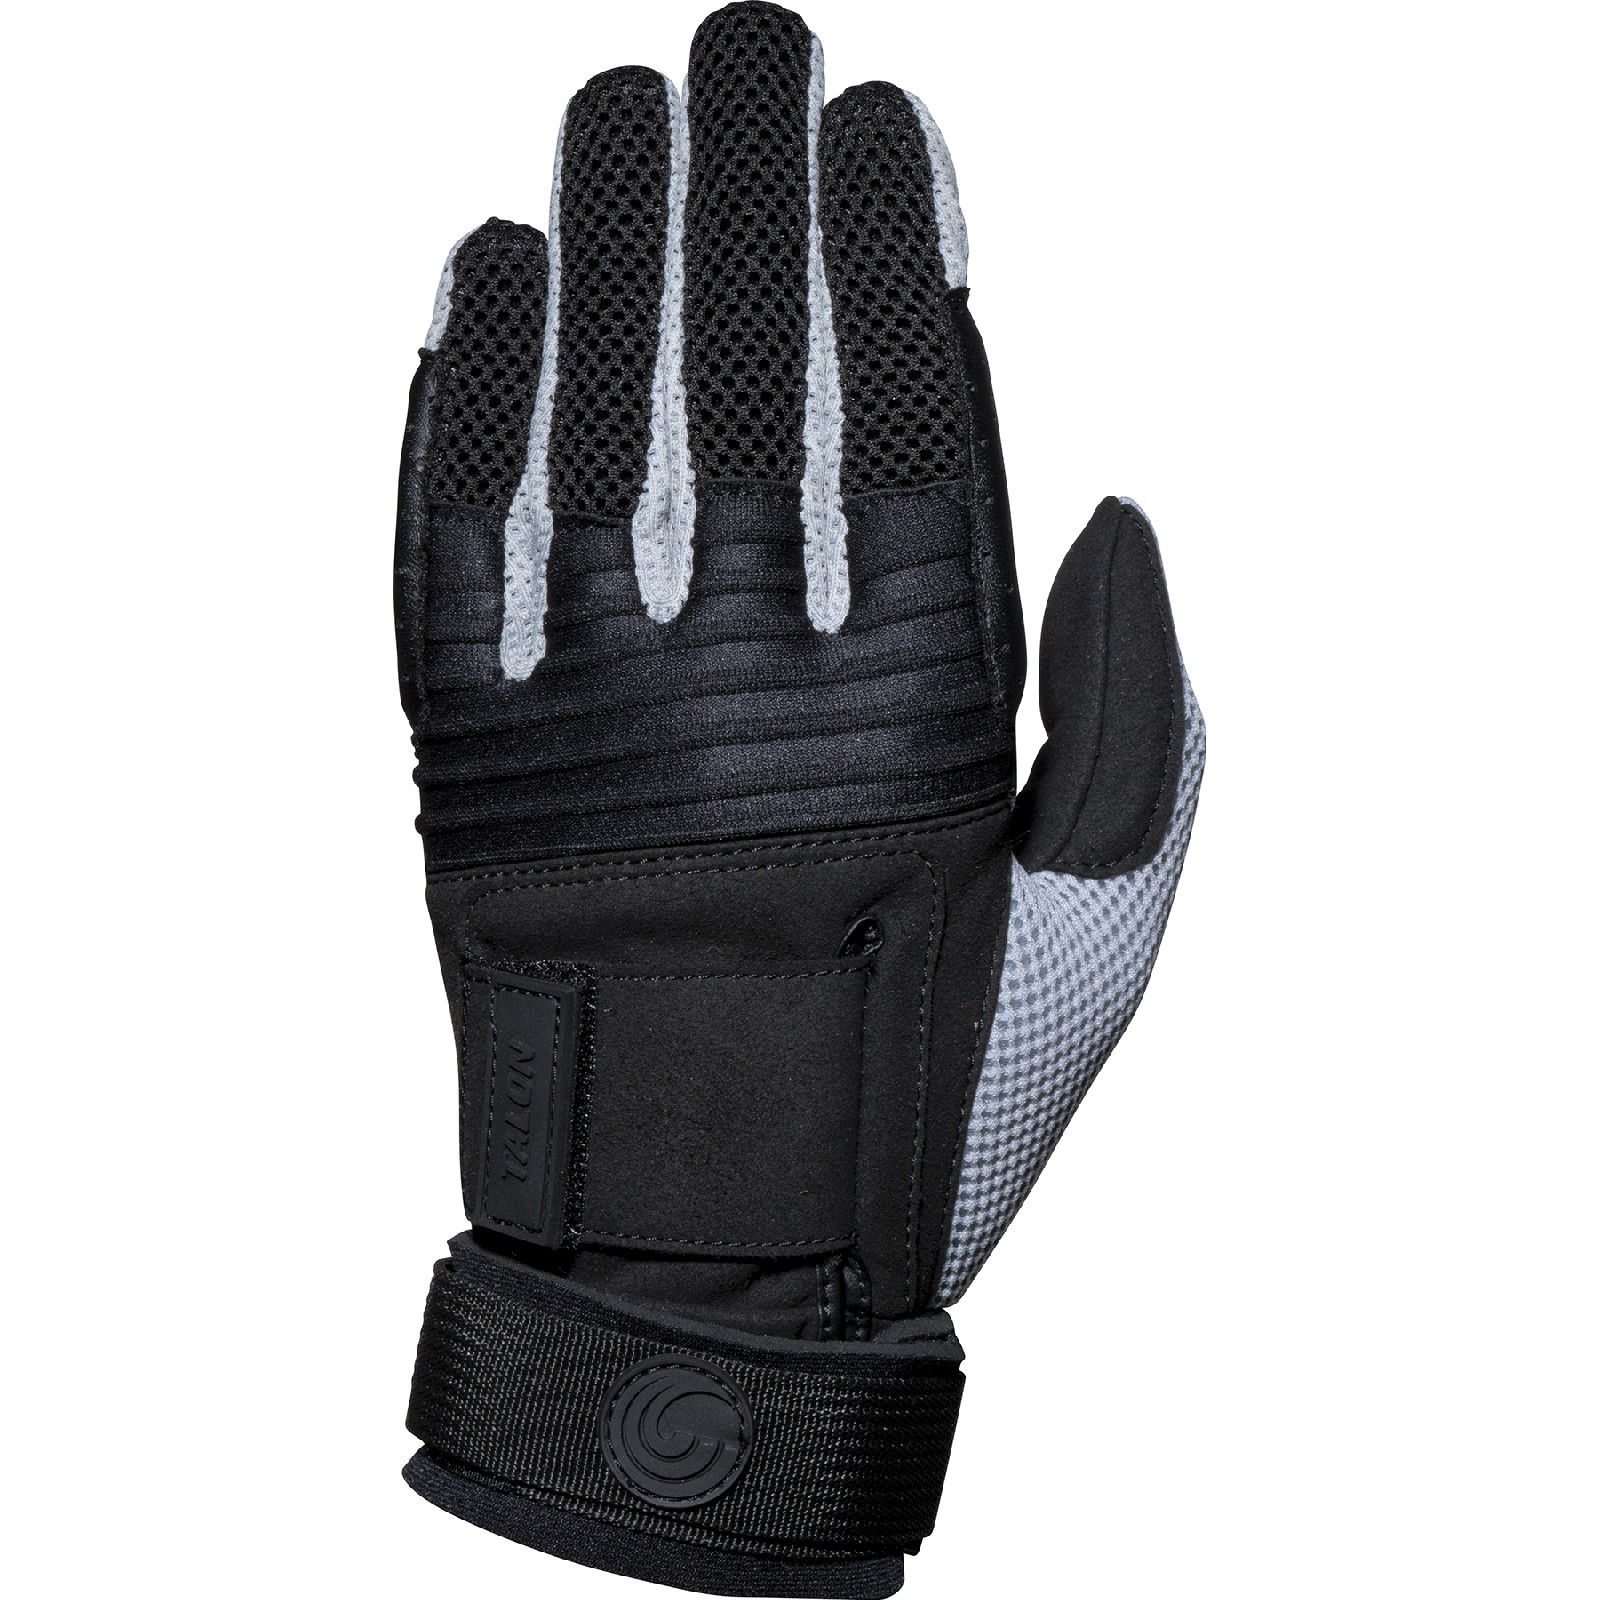 TALON GLOVE CONNELLY 2019